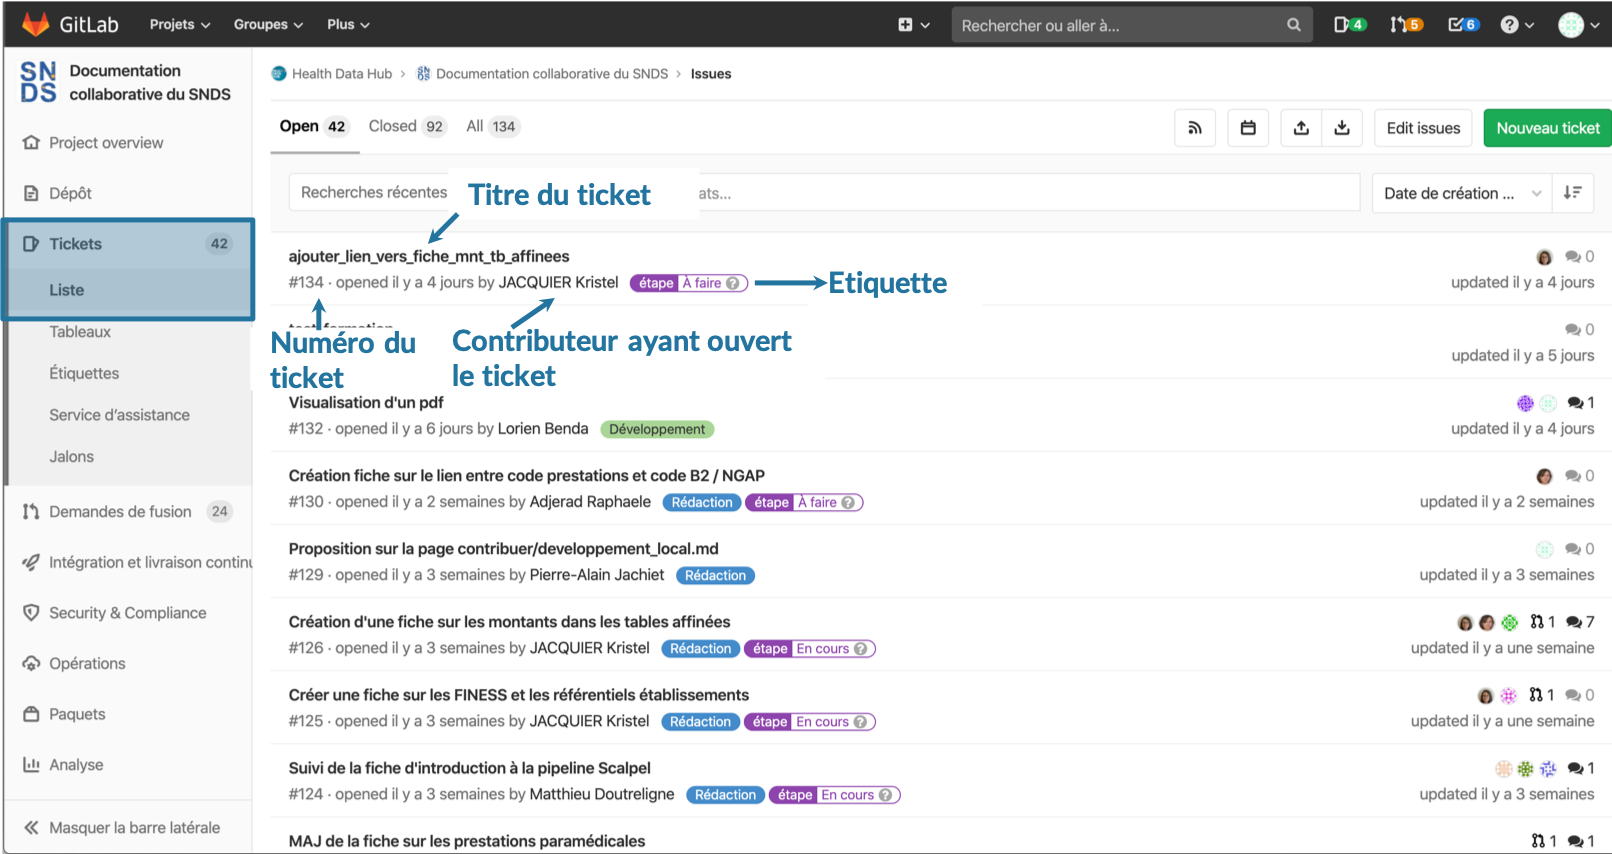 files/images/tutoriel_gitlab/2020-04-27_HDH_ticket-liste_MLP-2.0.png